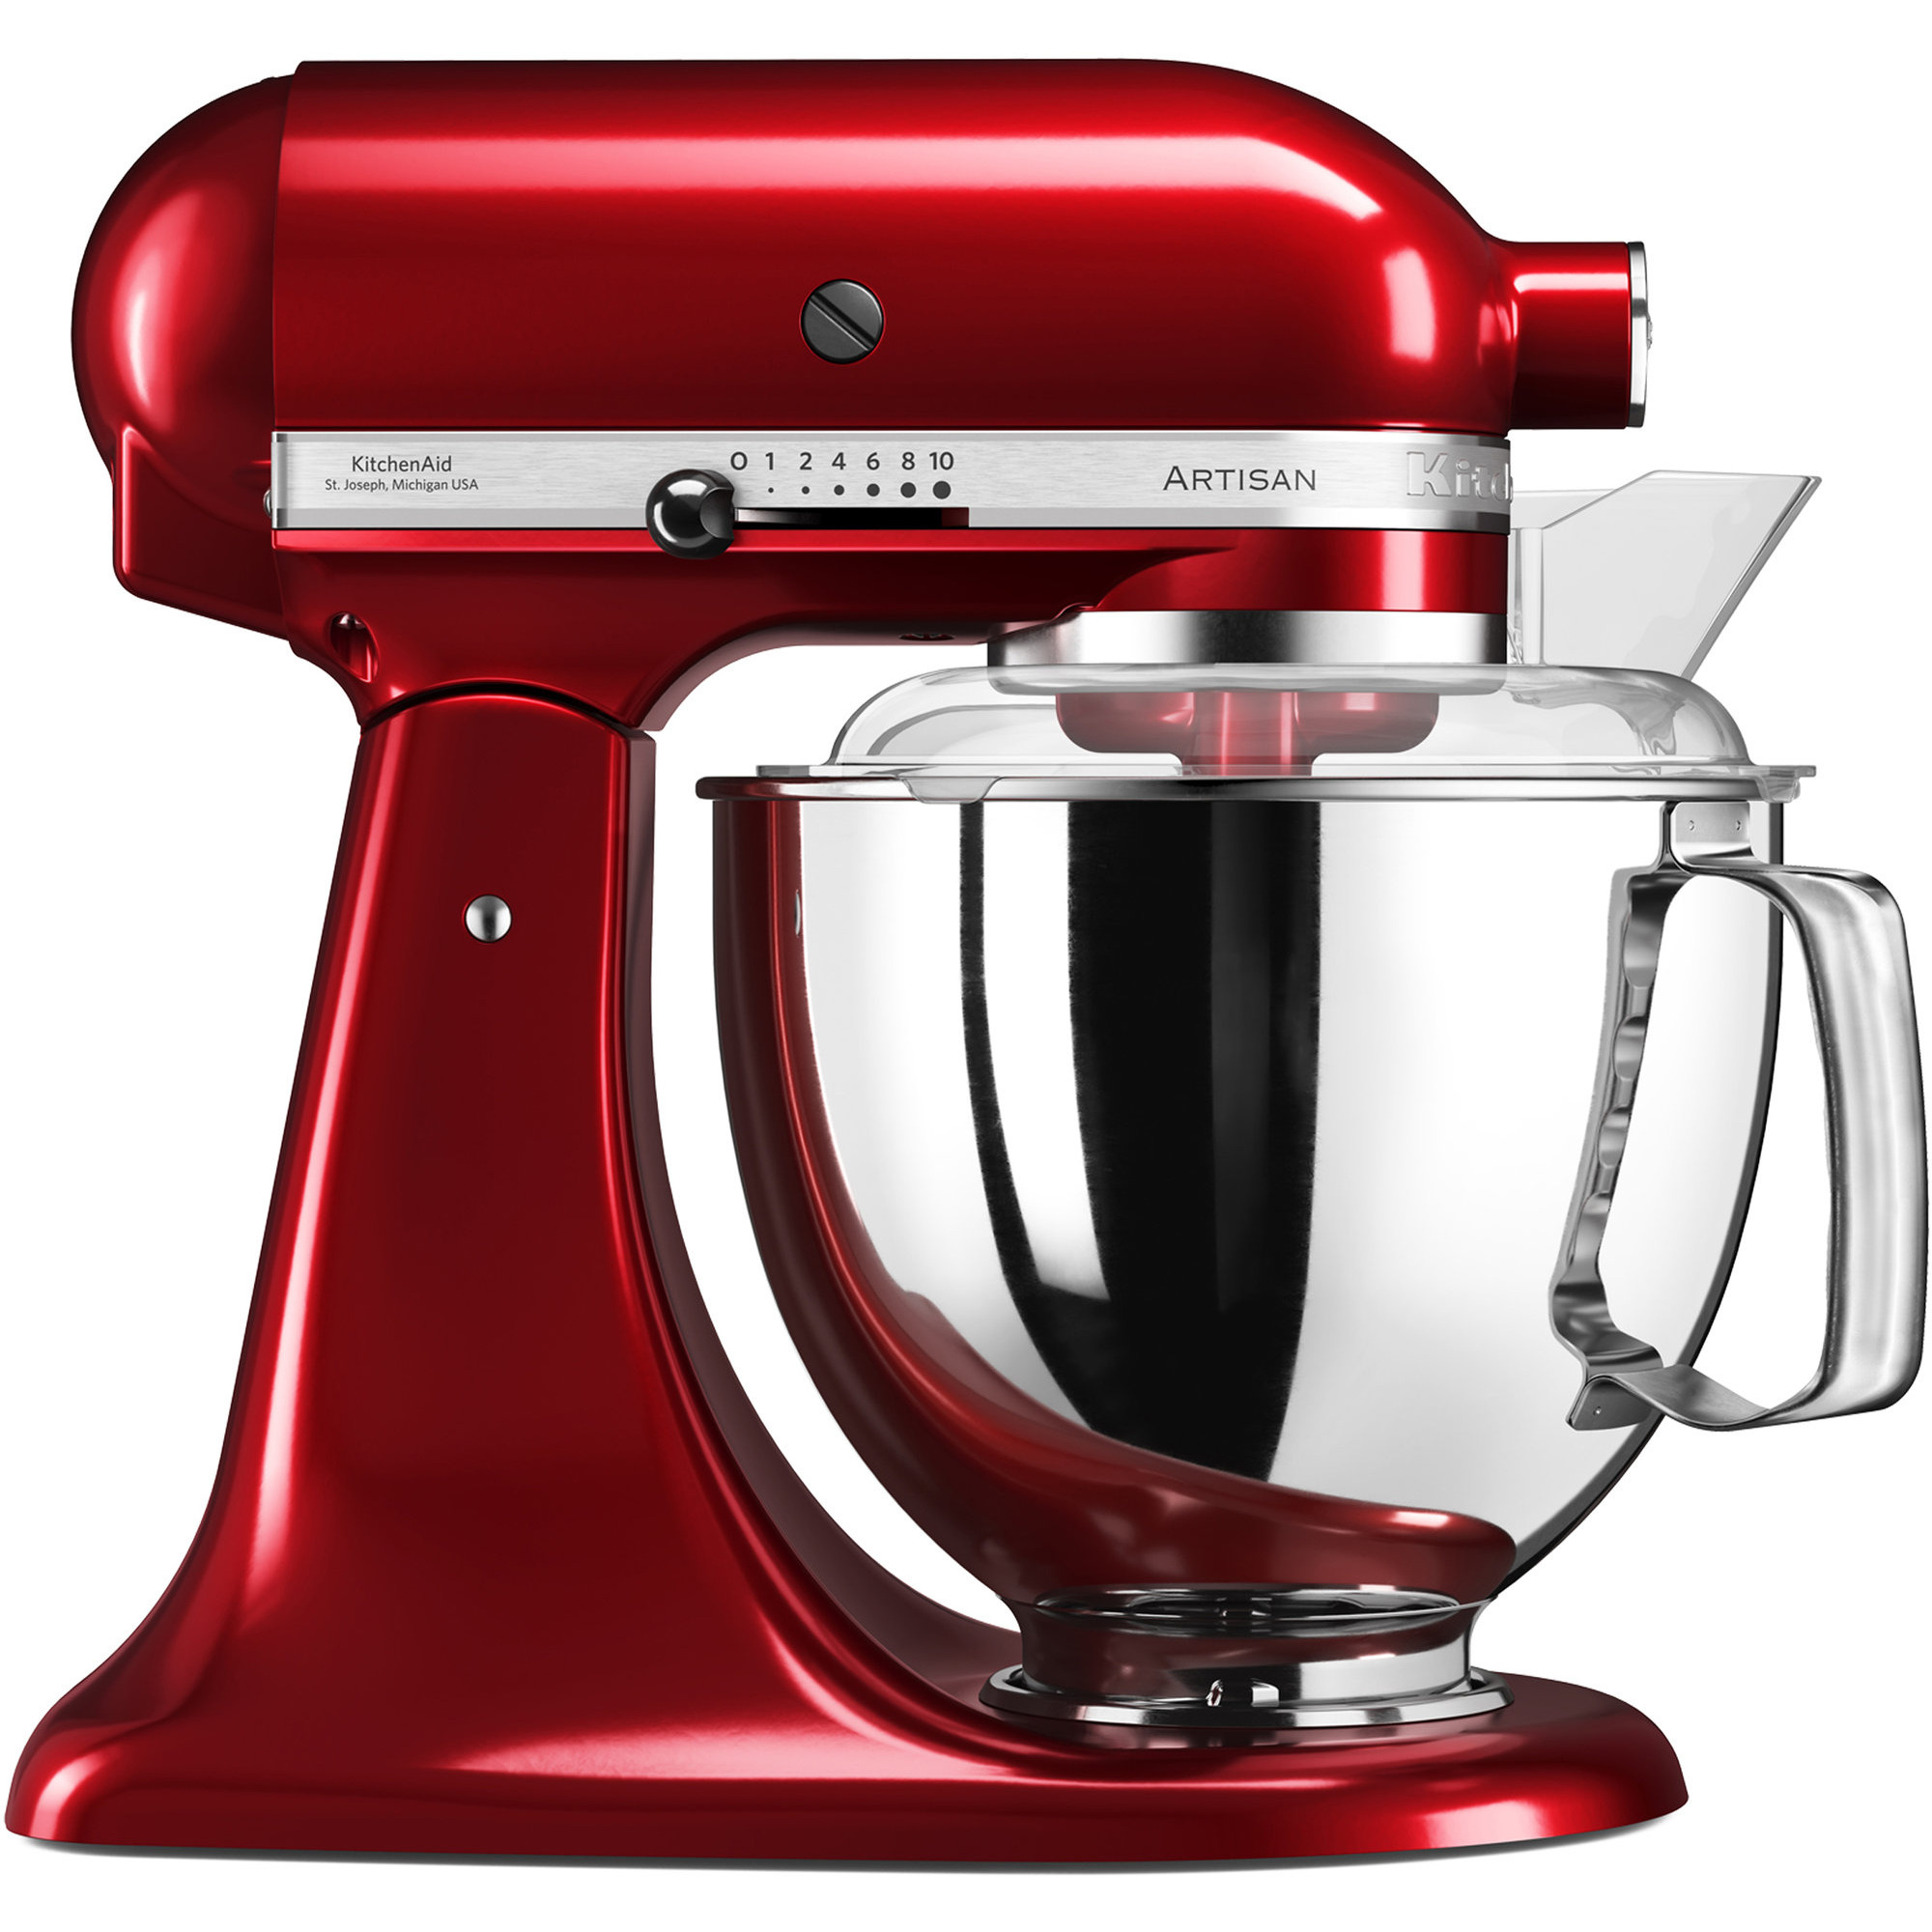 KitchenAid Artisan KSM175PSECA Röd Metallic